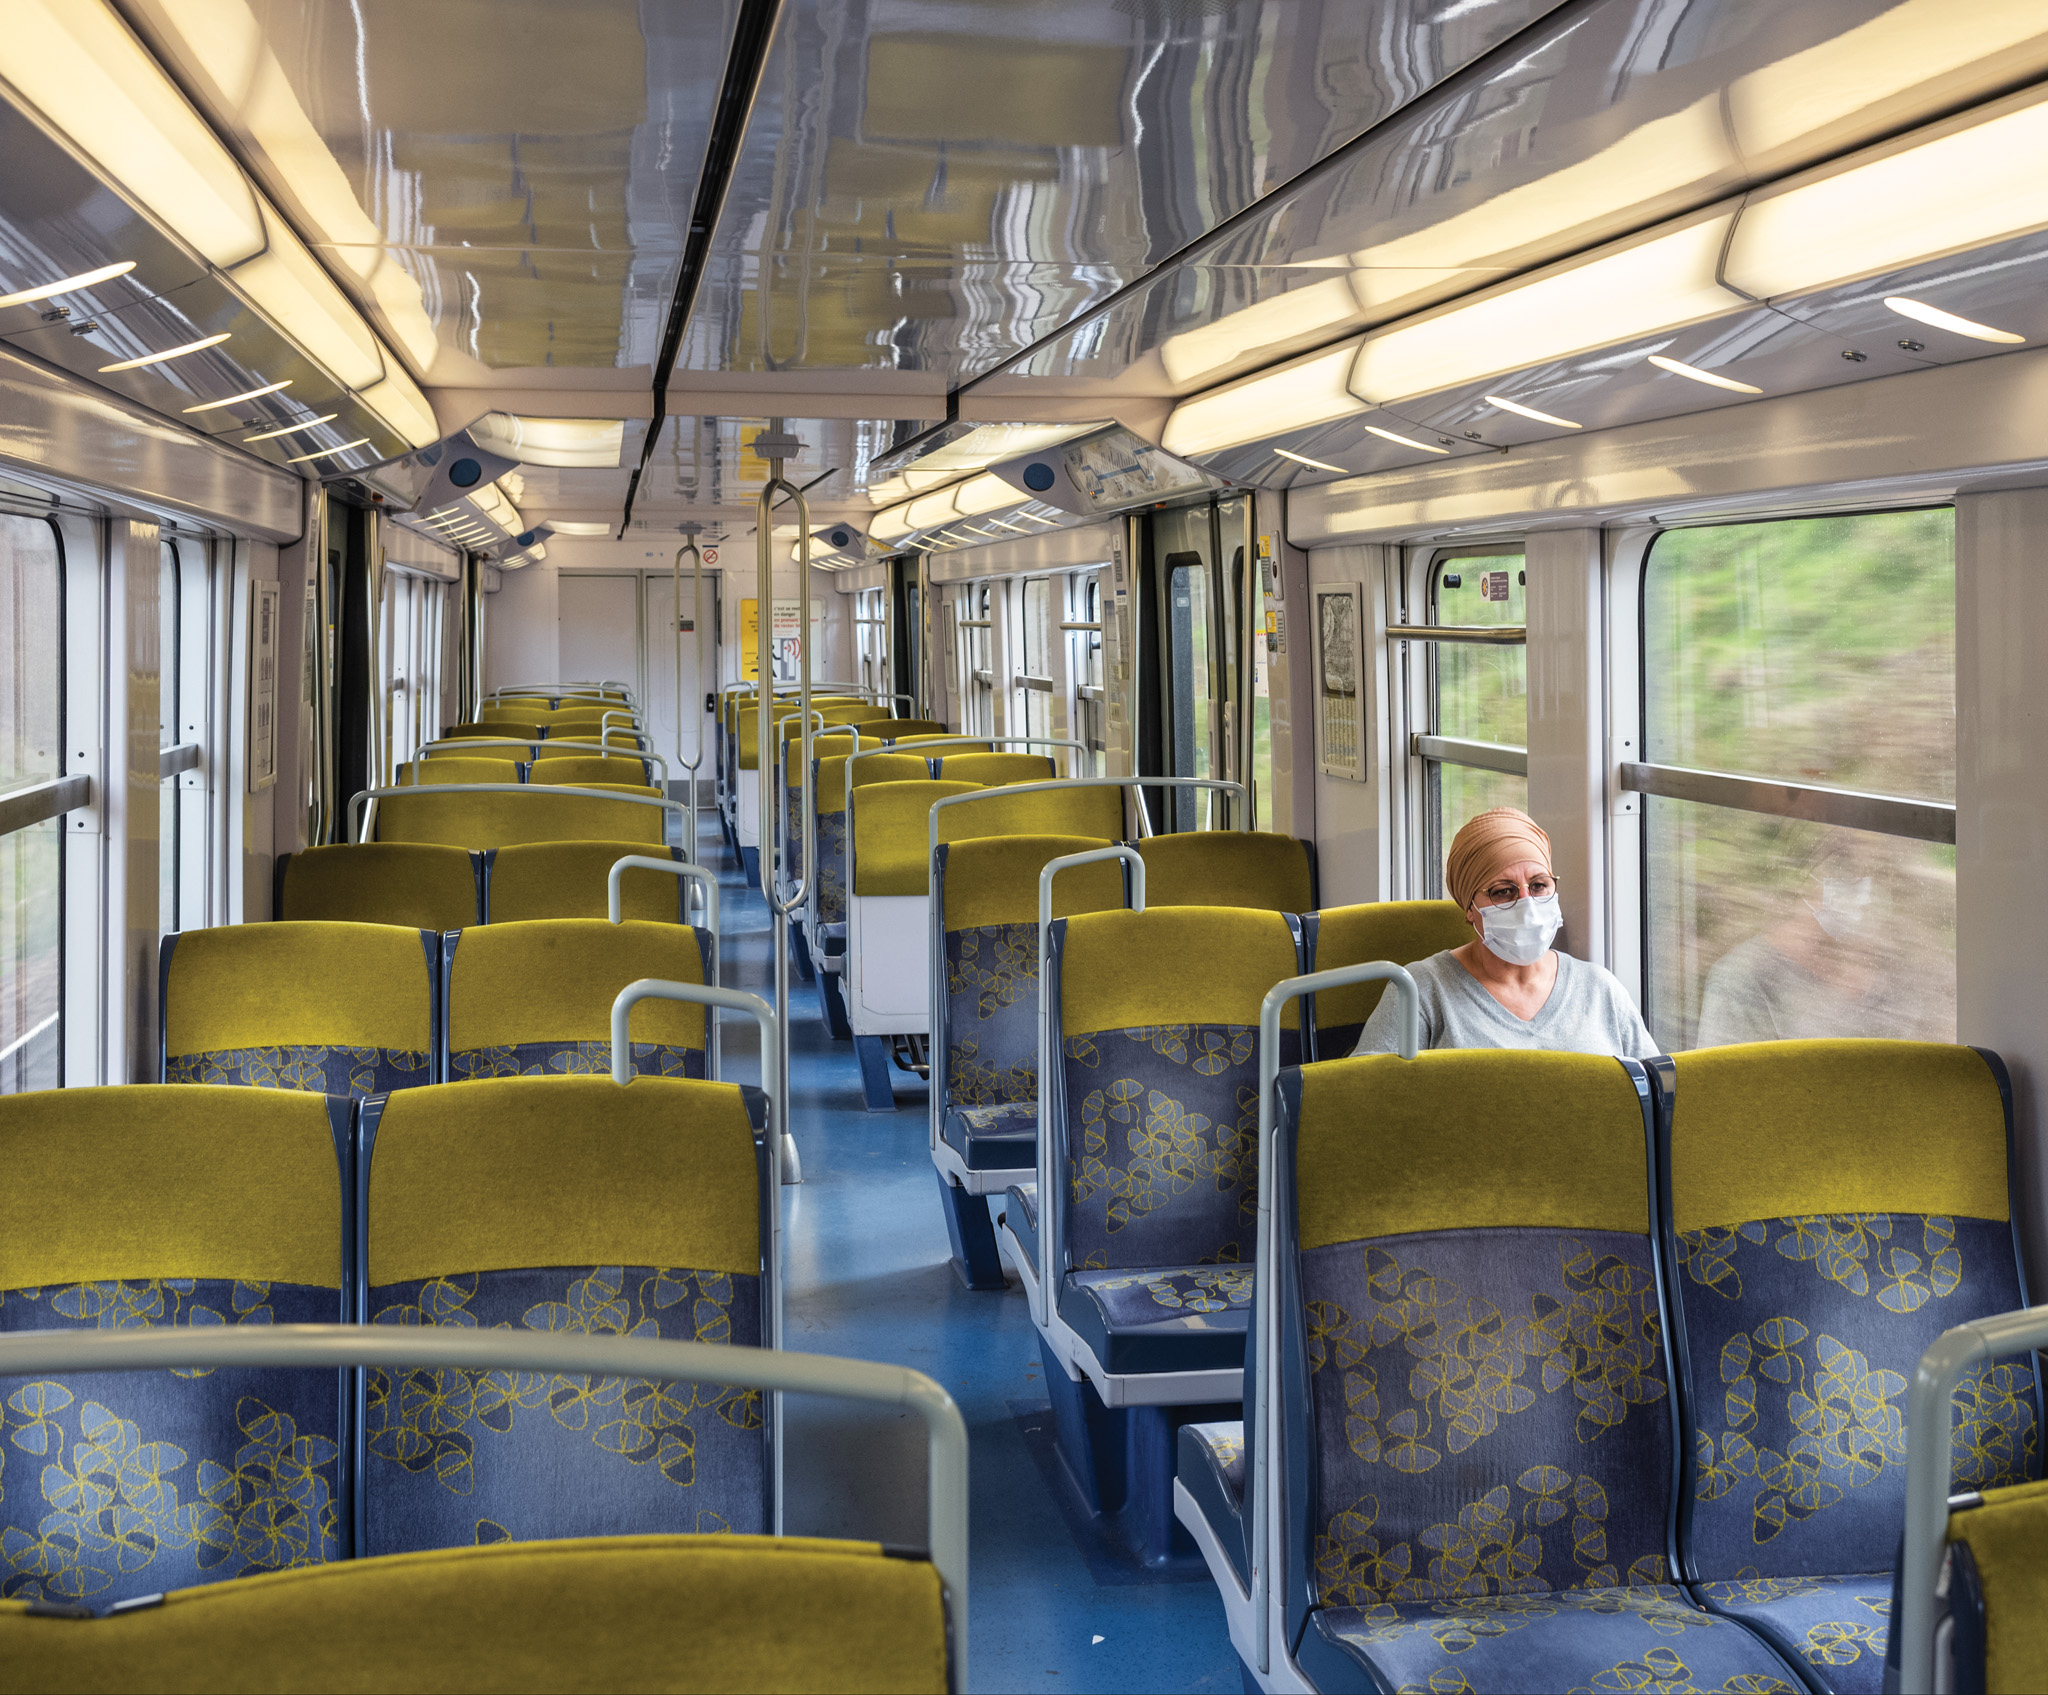 Picture of the interior of a nearly empty train